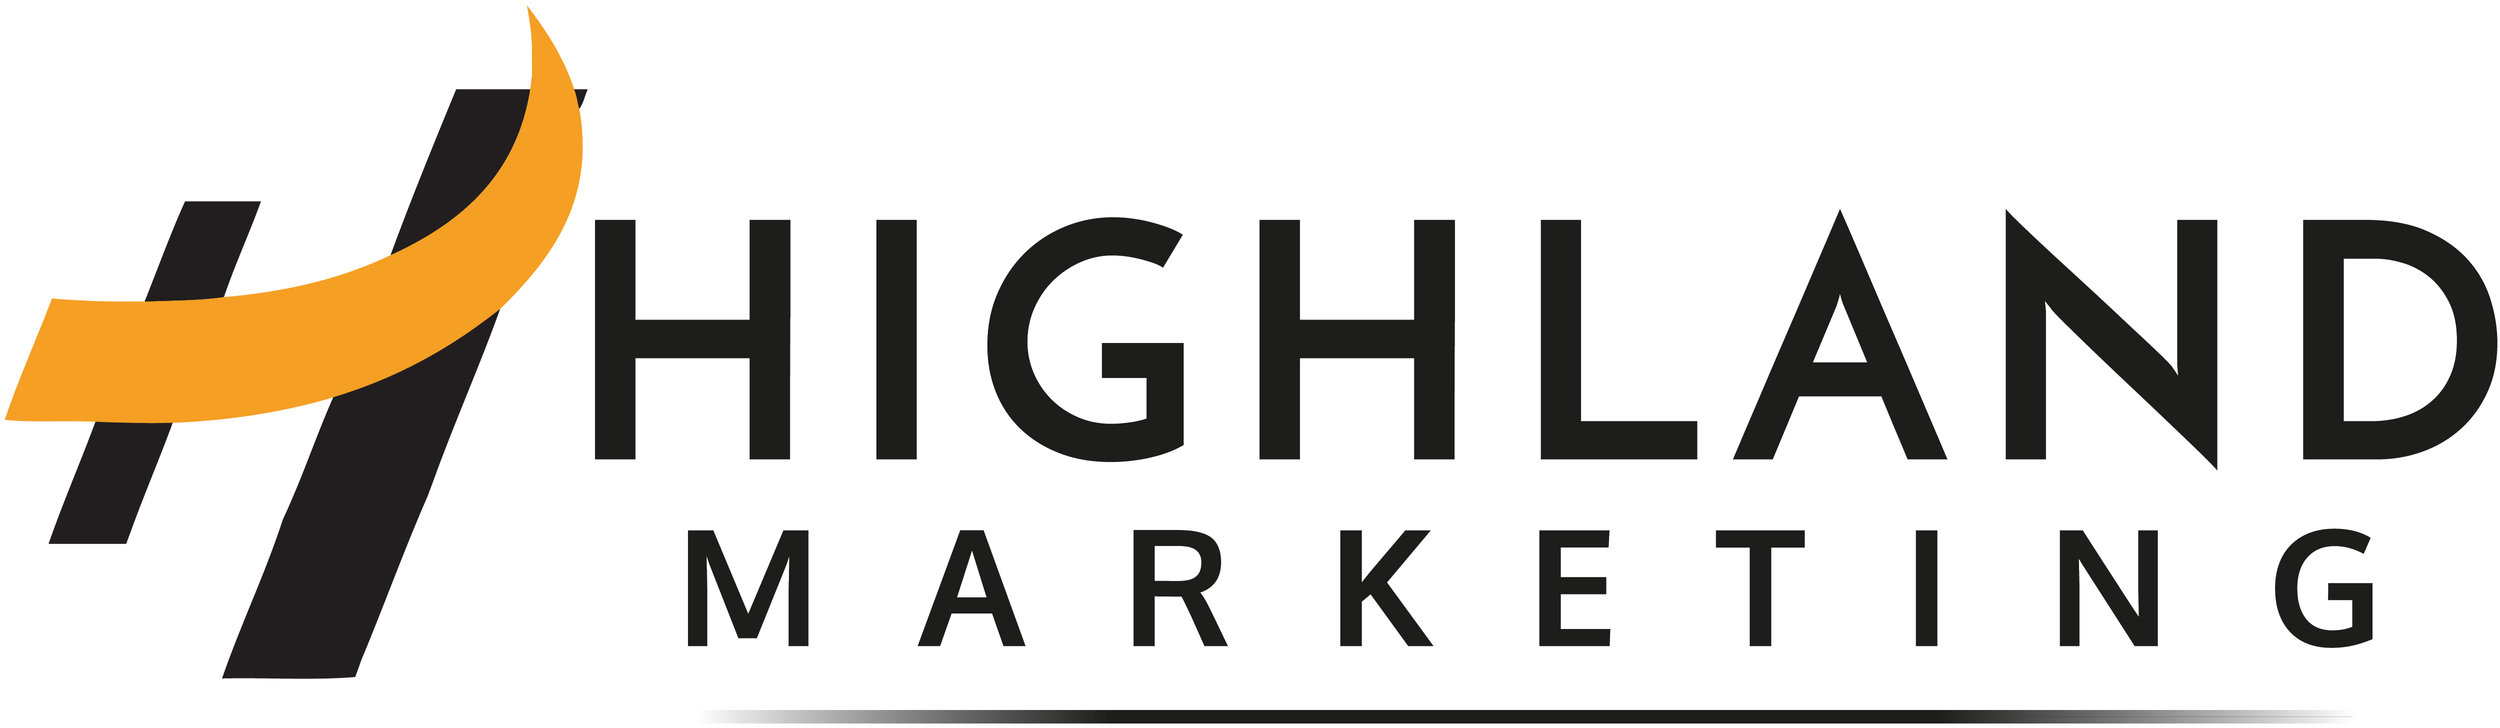 Highland-Marketing-Logo-2015 (1).jpg